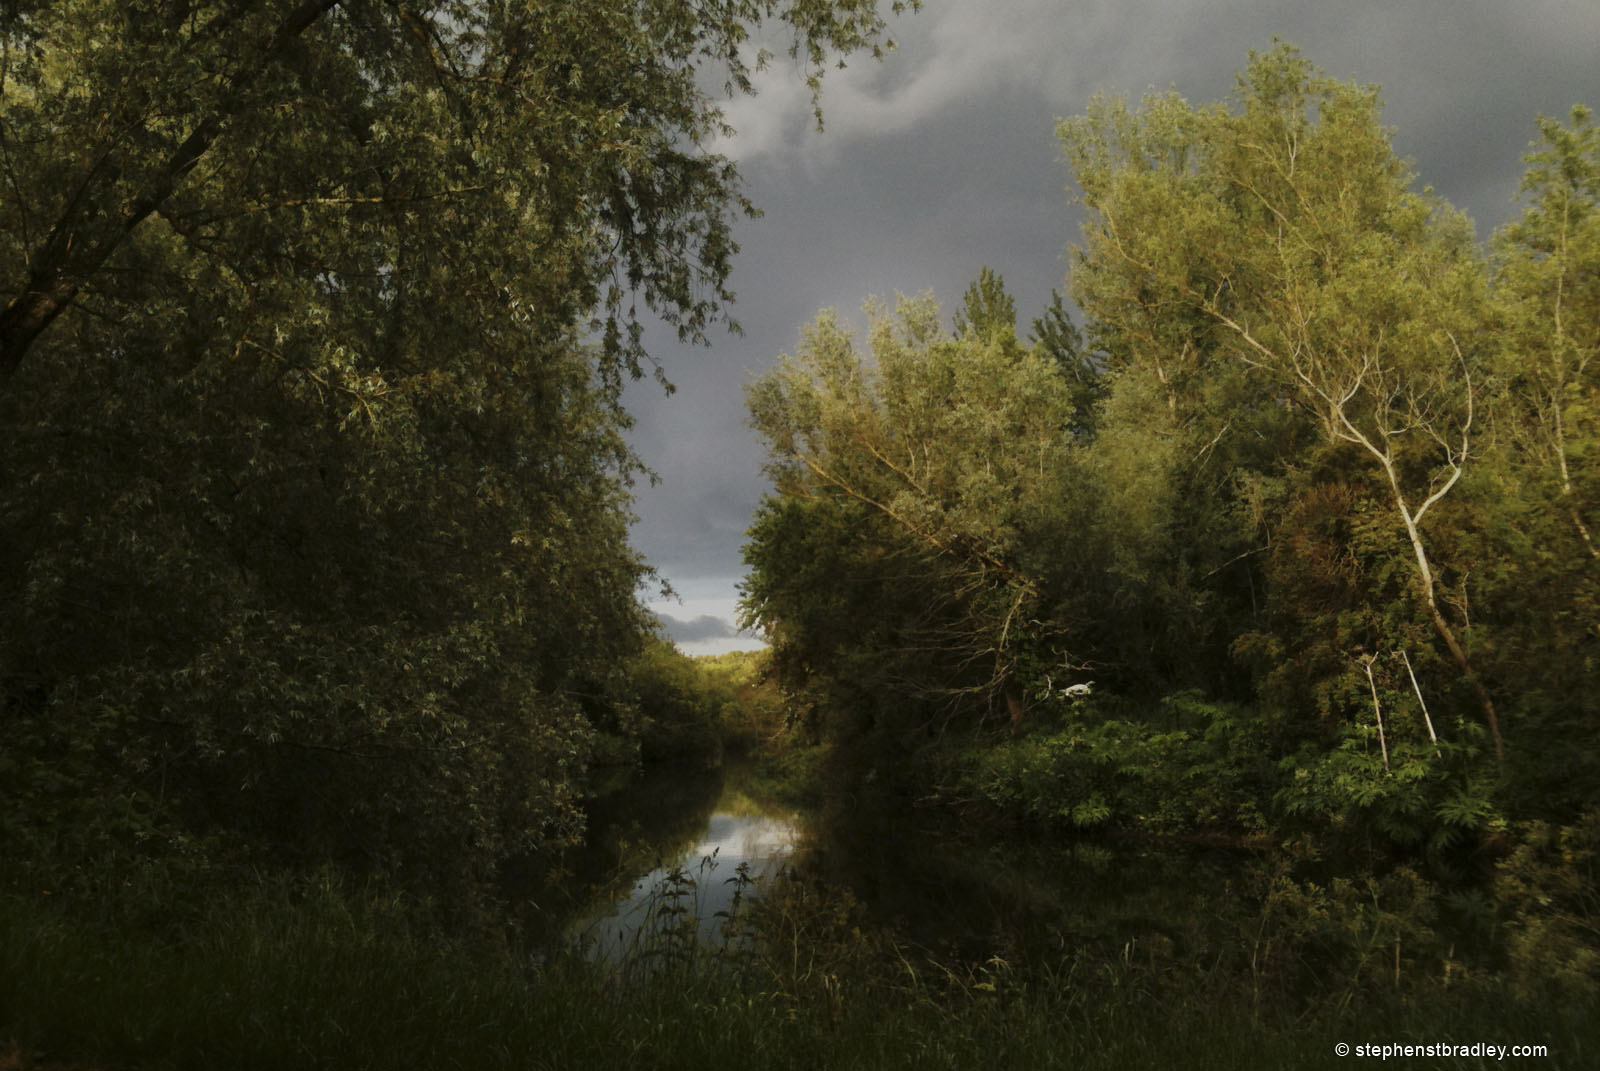 Lagan Tow Path, River Lagan, Belfast, Northern Ireland landscape photograph.